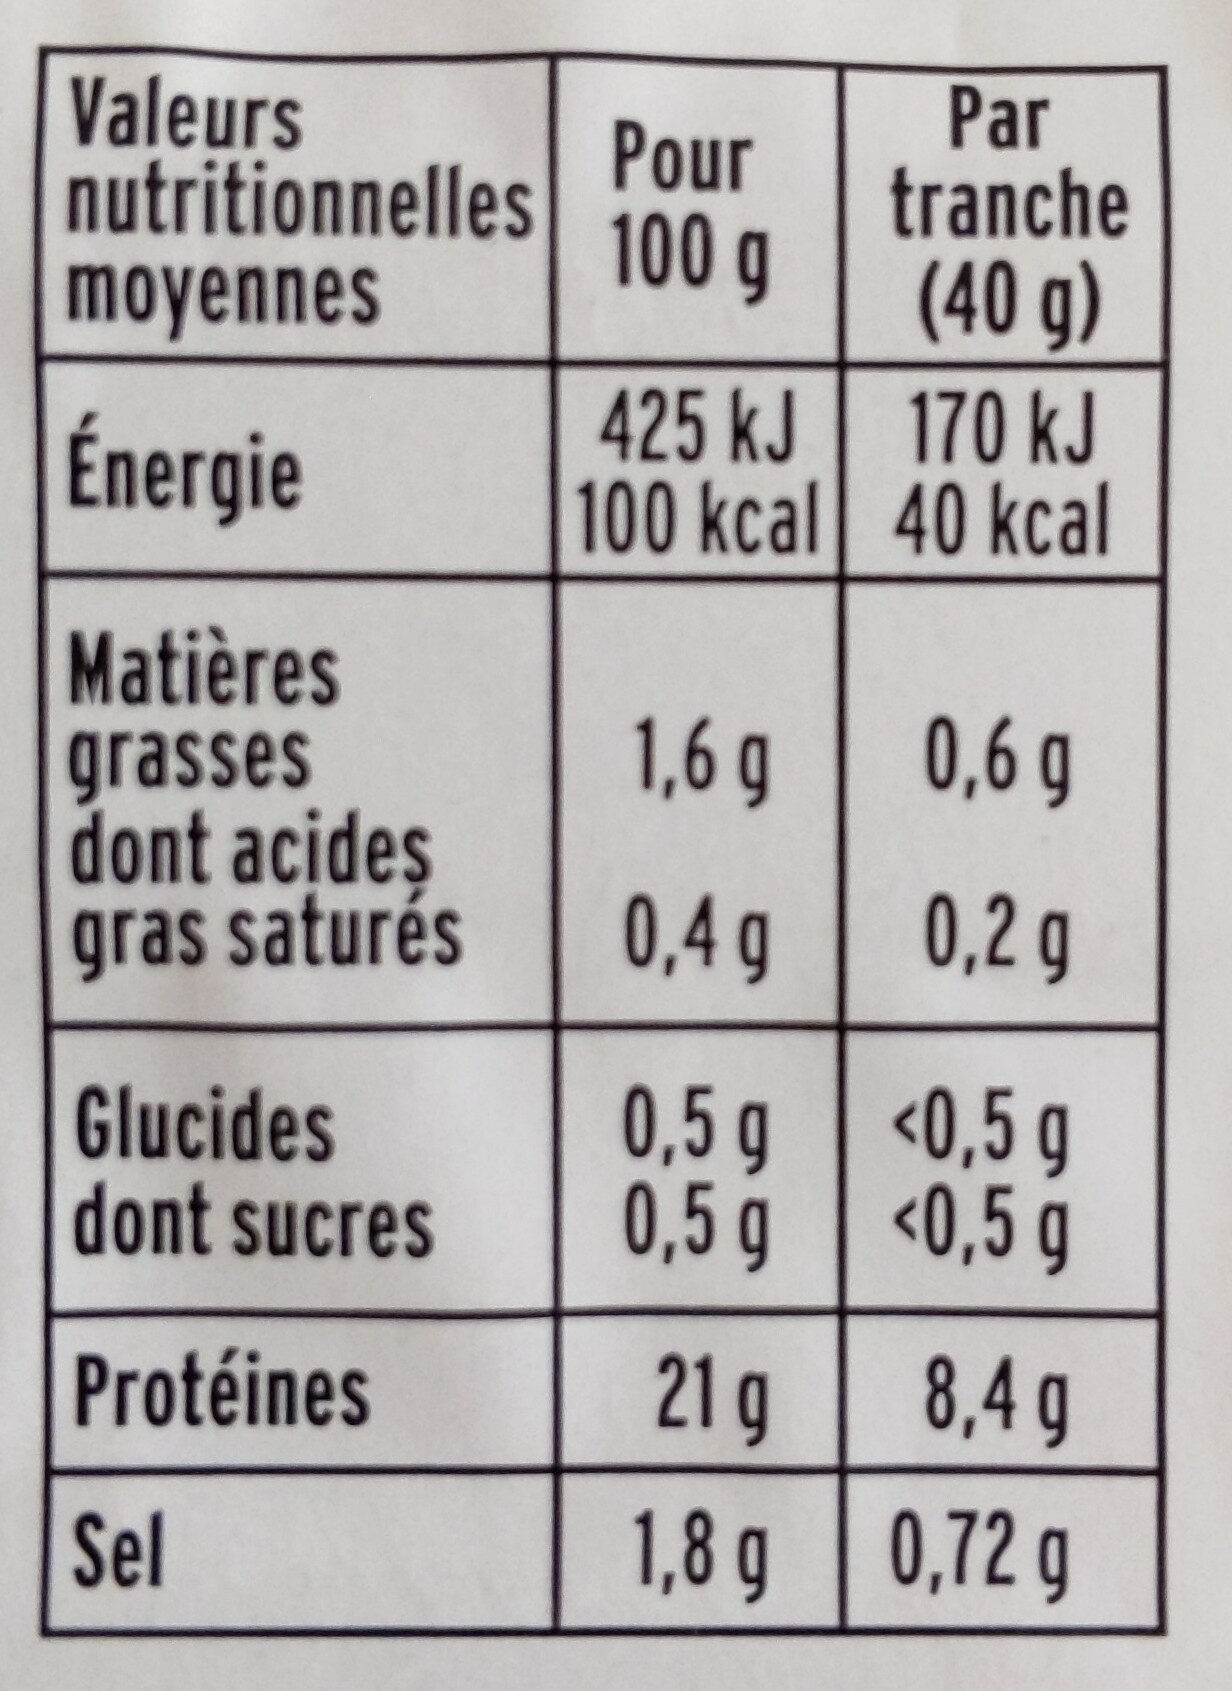 Blanc de poulet doré au four - 4 tr - Nutrition facts - fr